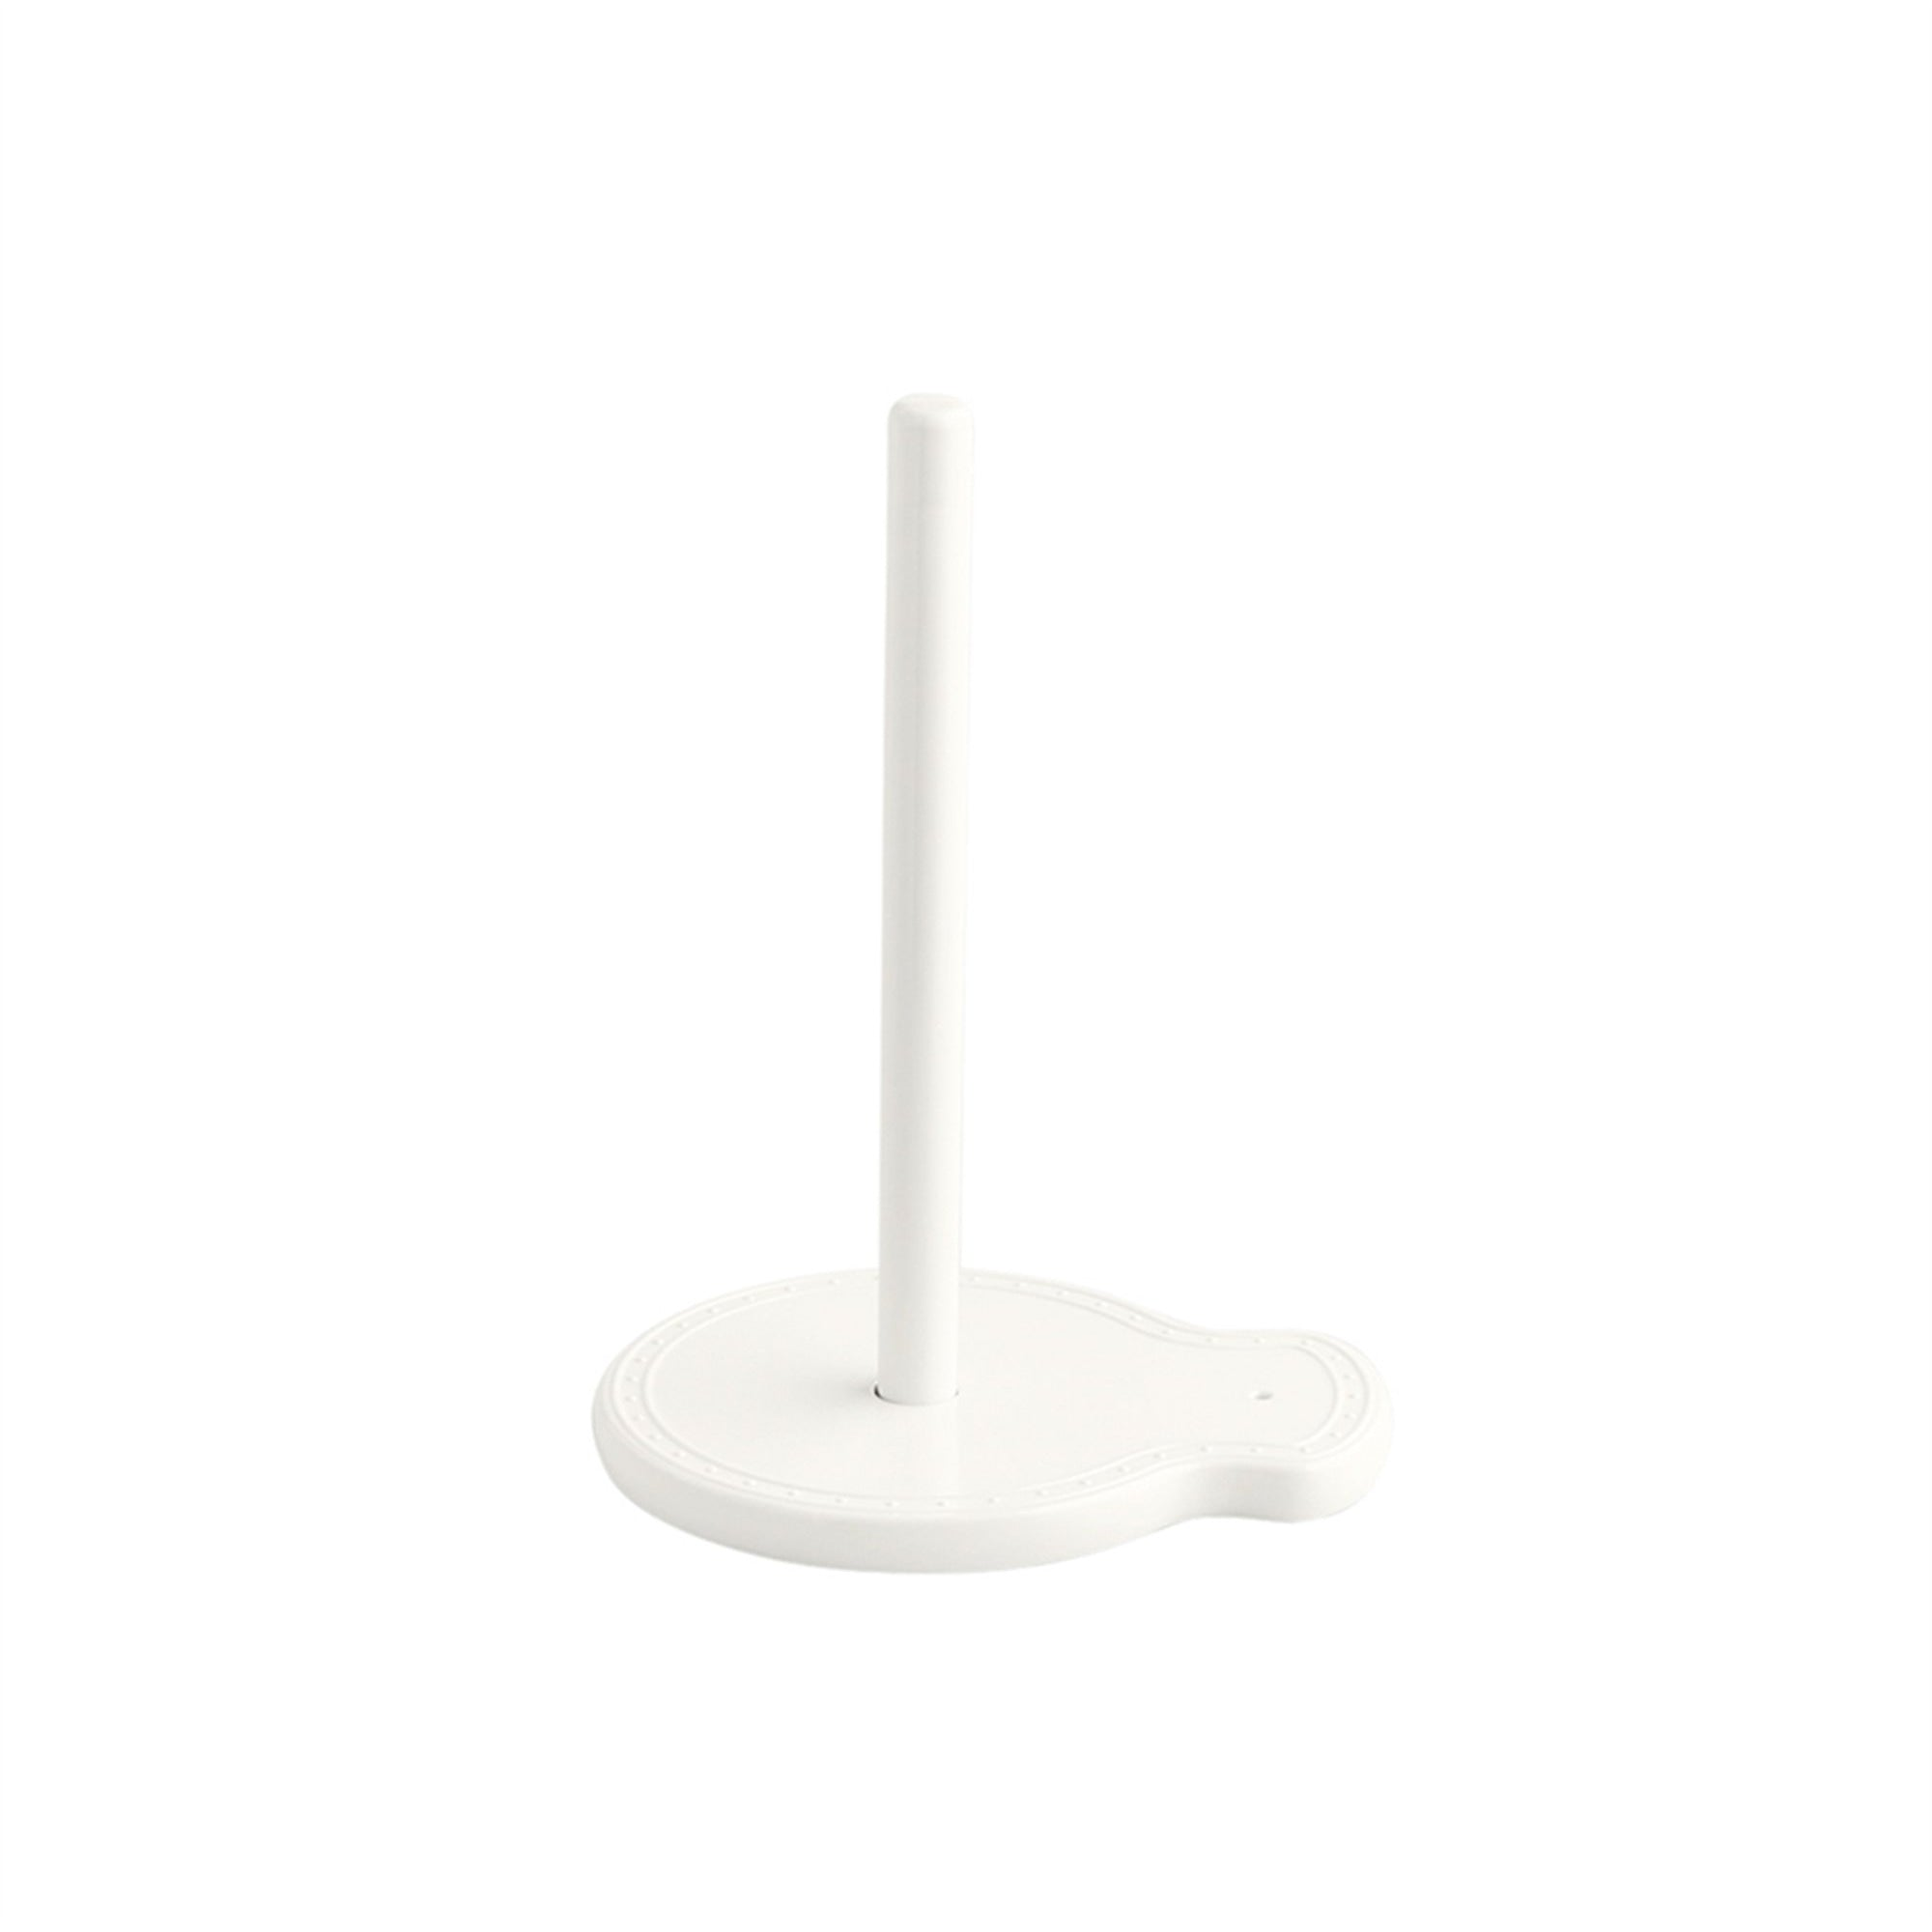 NORA FLEMING - MELAMINE PAPER TOWEL HOLDER